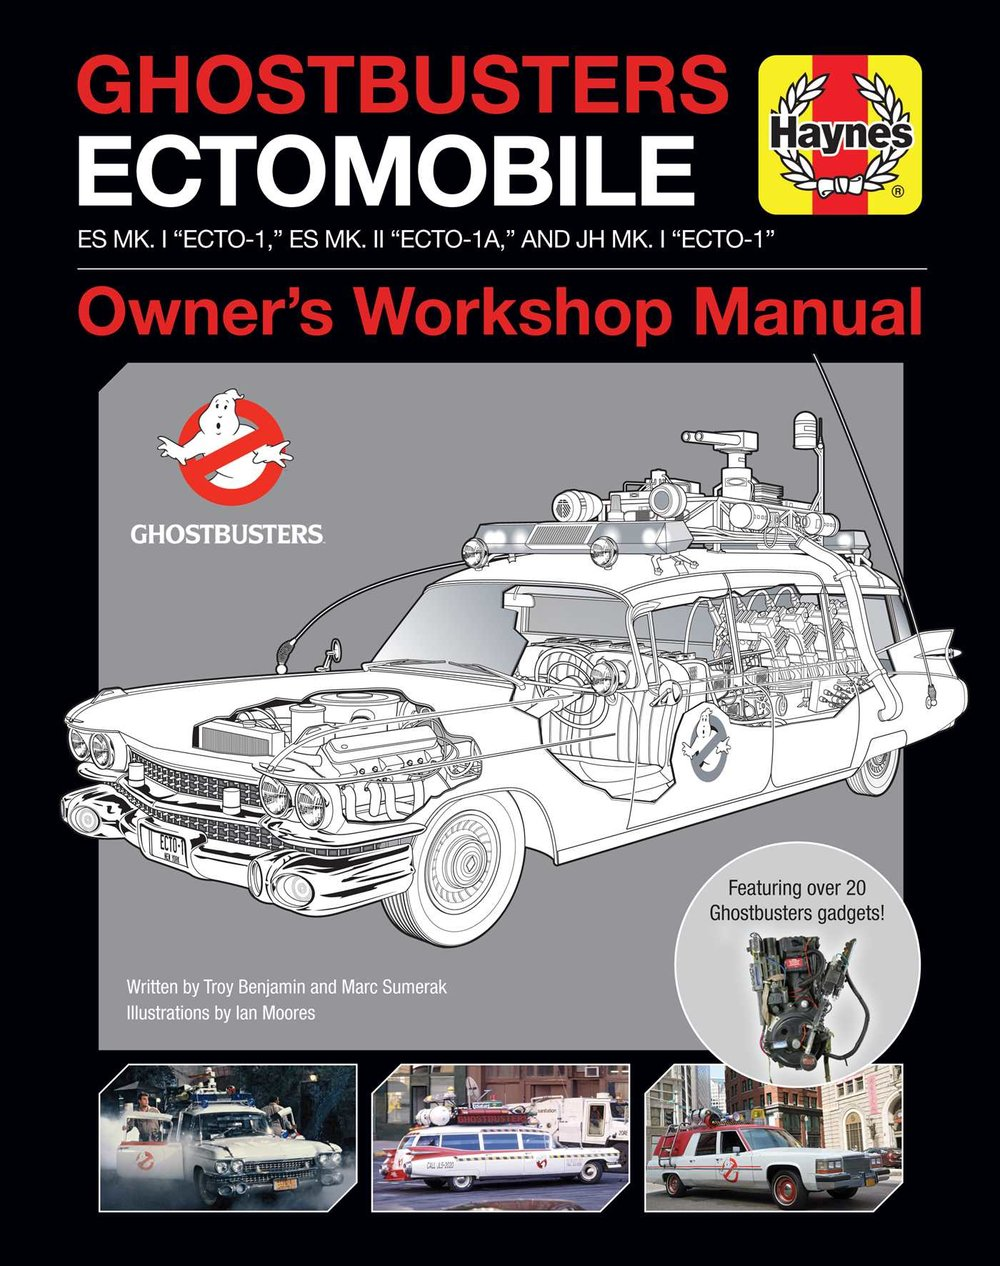 Ghostbusters Ectomobile - Owner's Workshop Manual